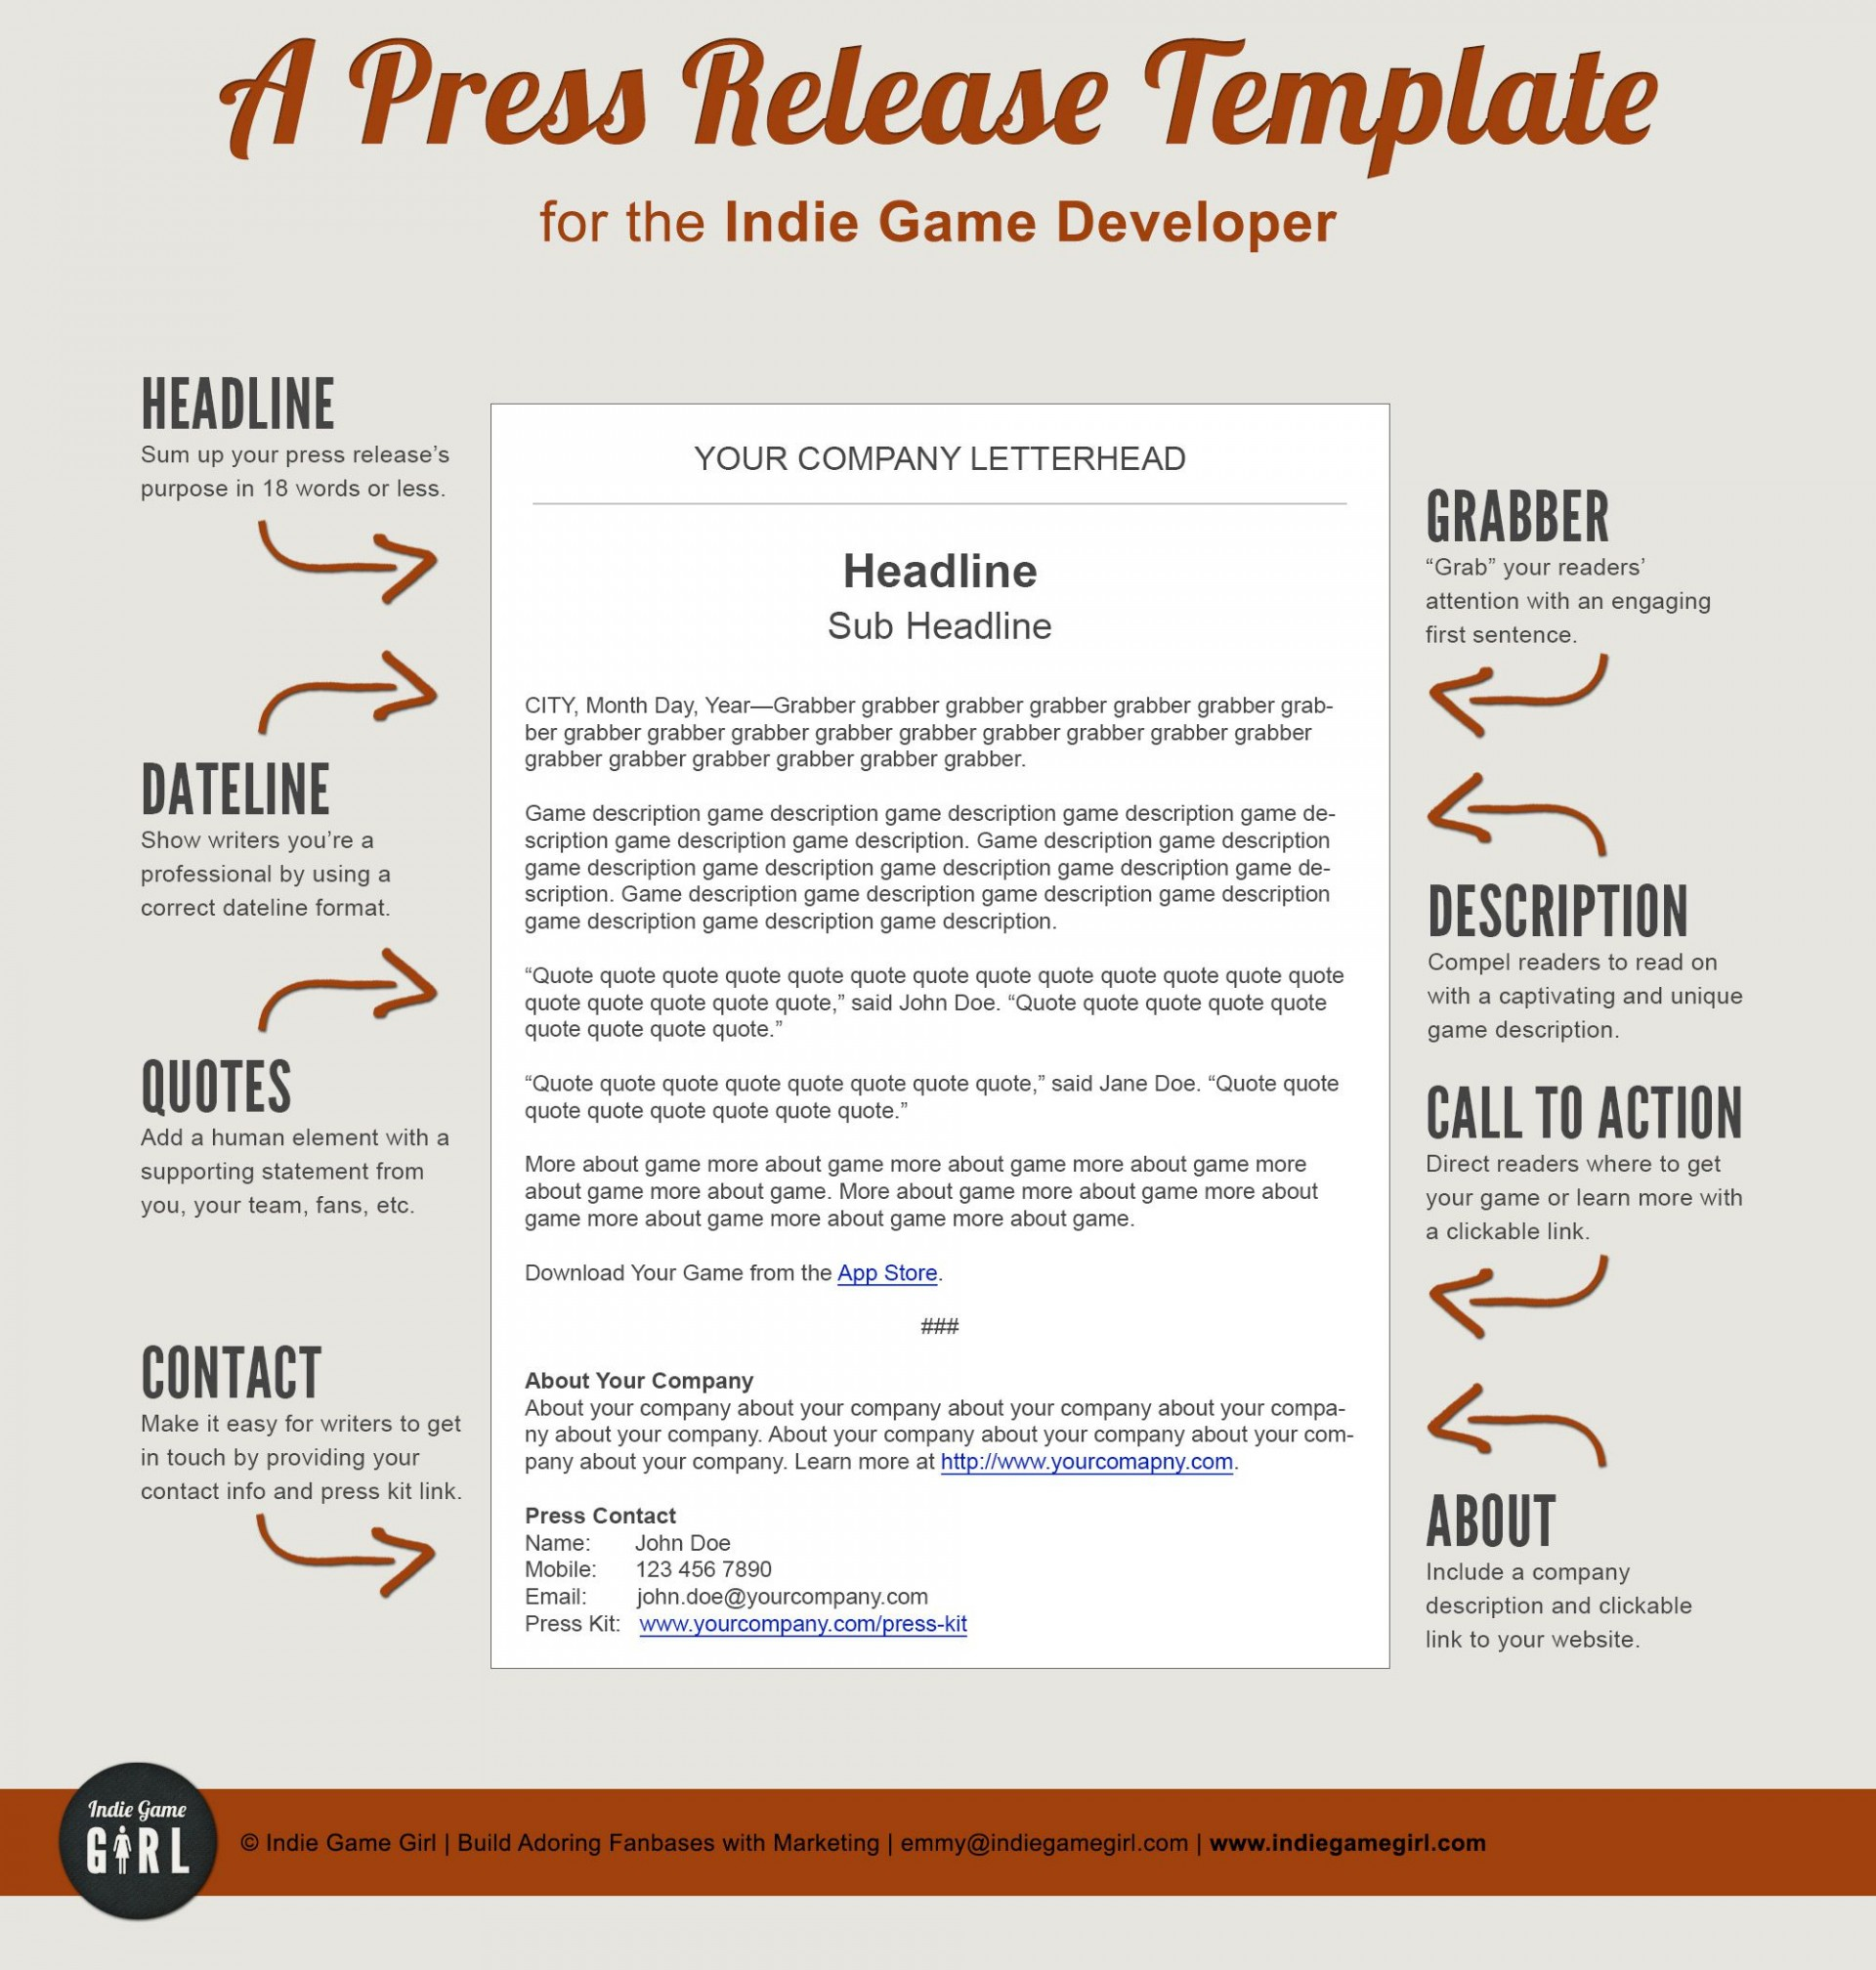 007 Sensational Pres Release Template Doc High Resolution  Format Example Sample1920